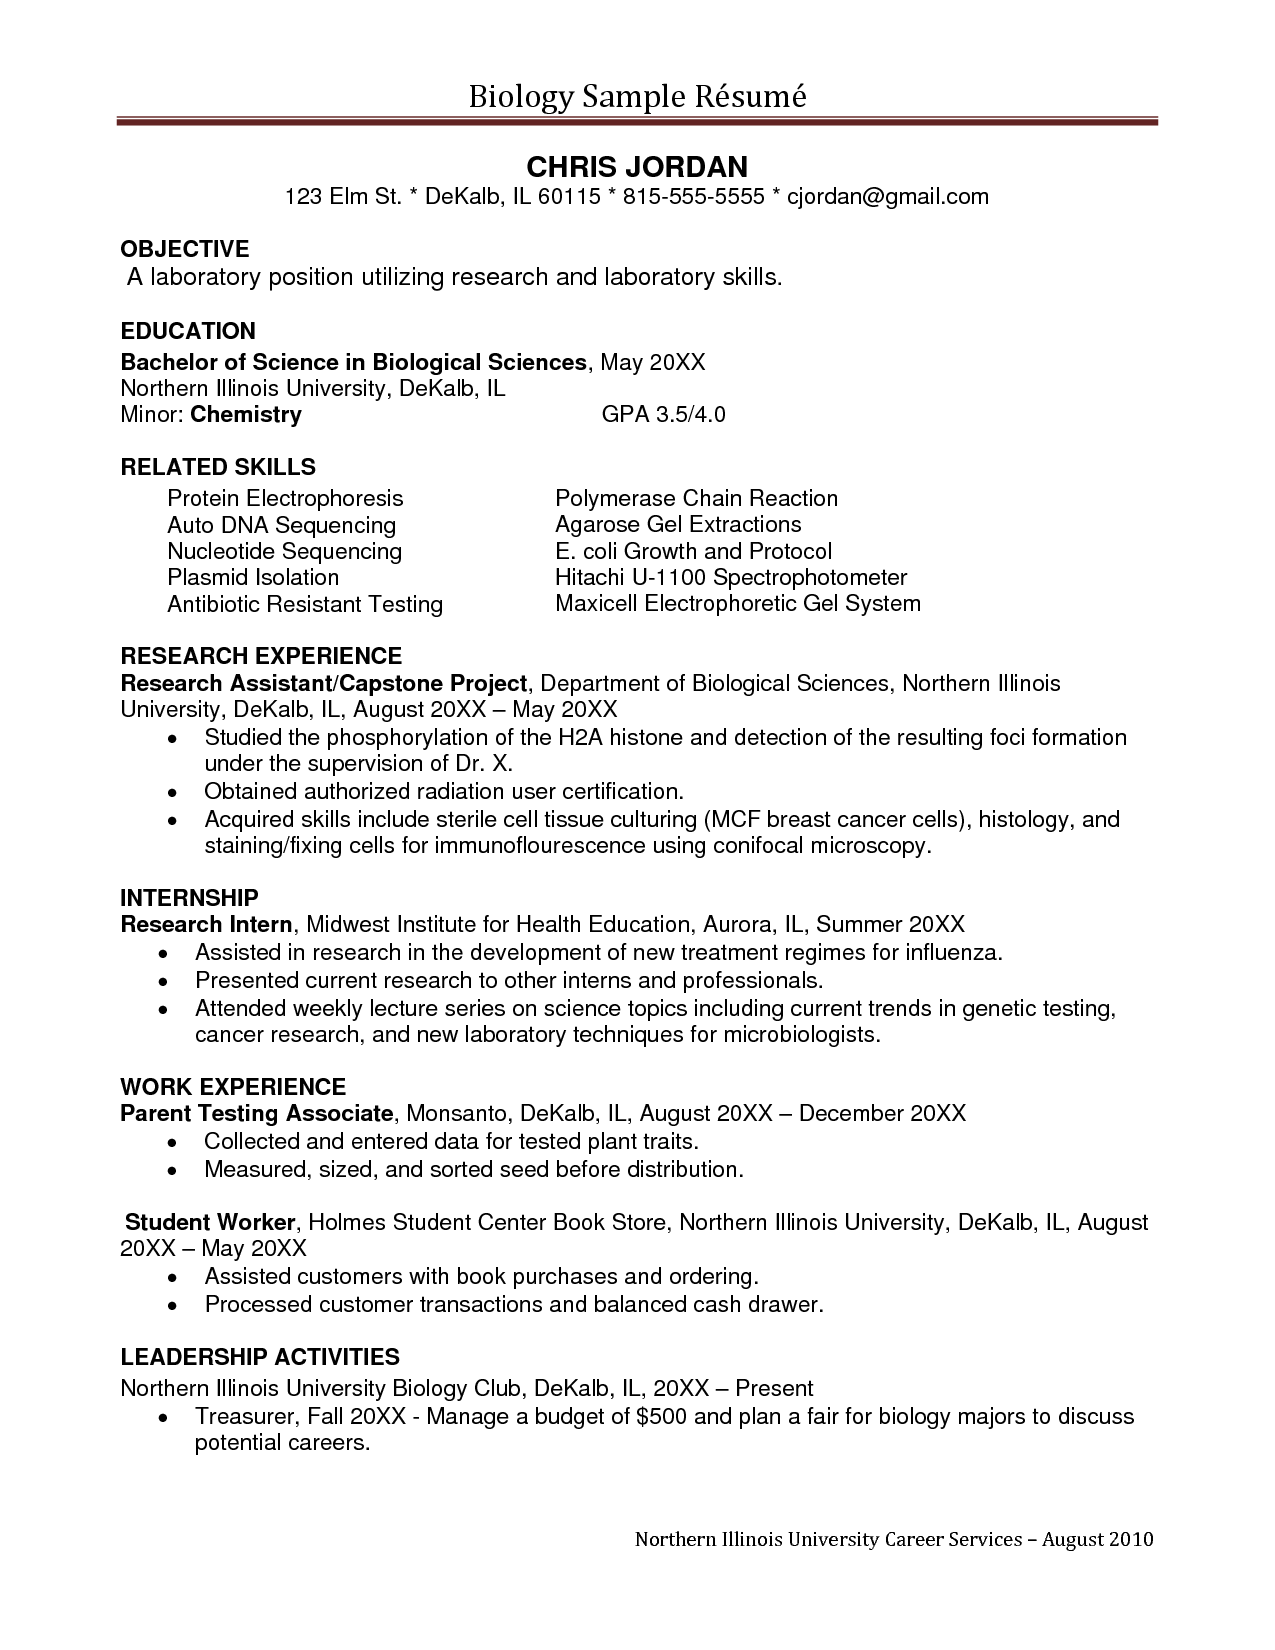 sample, undergraduate research assistant resume sample,ĺ ...